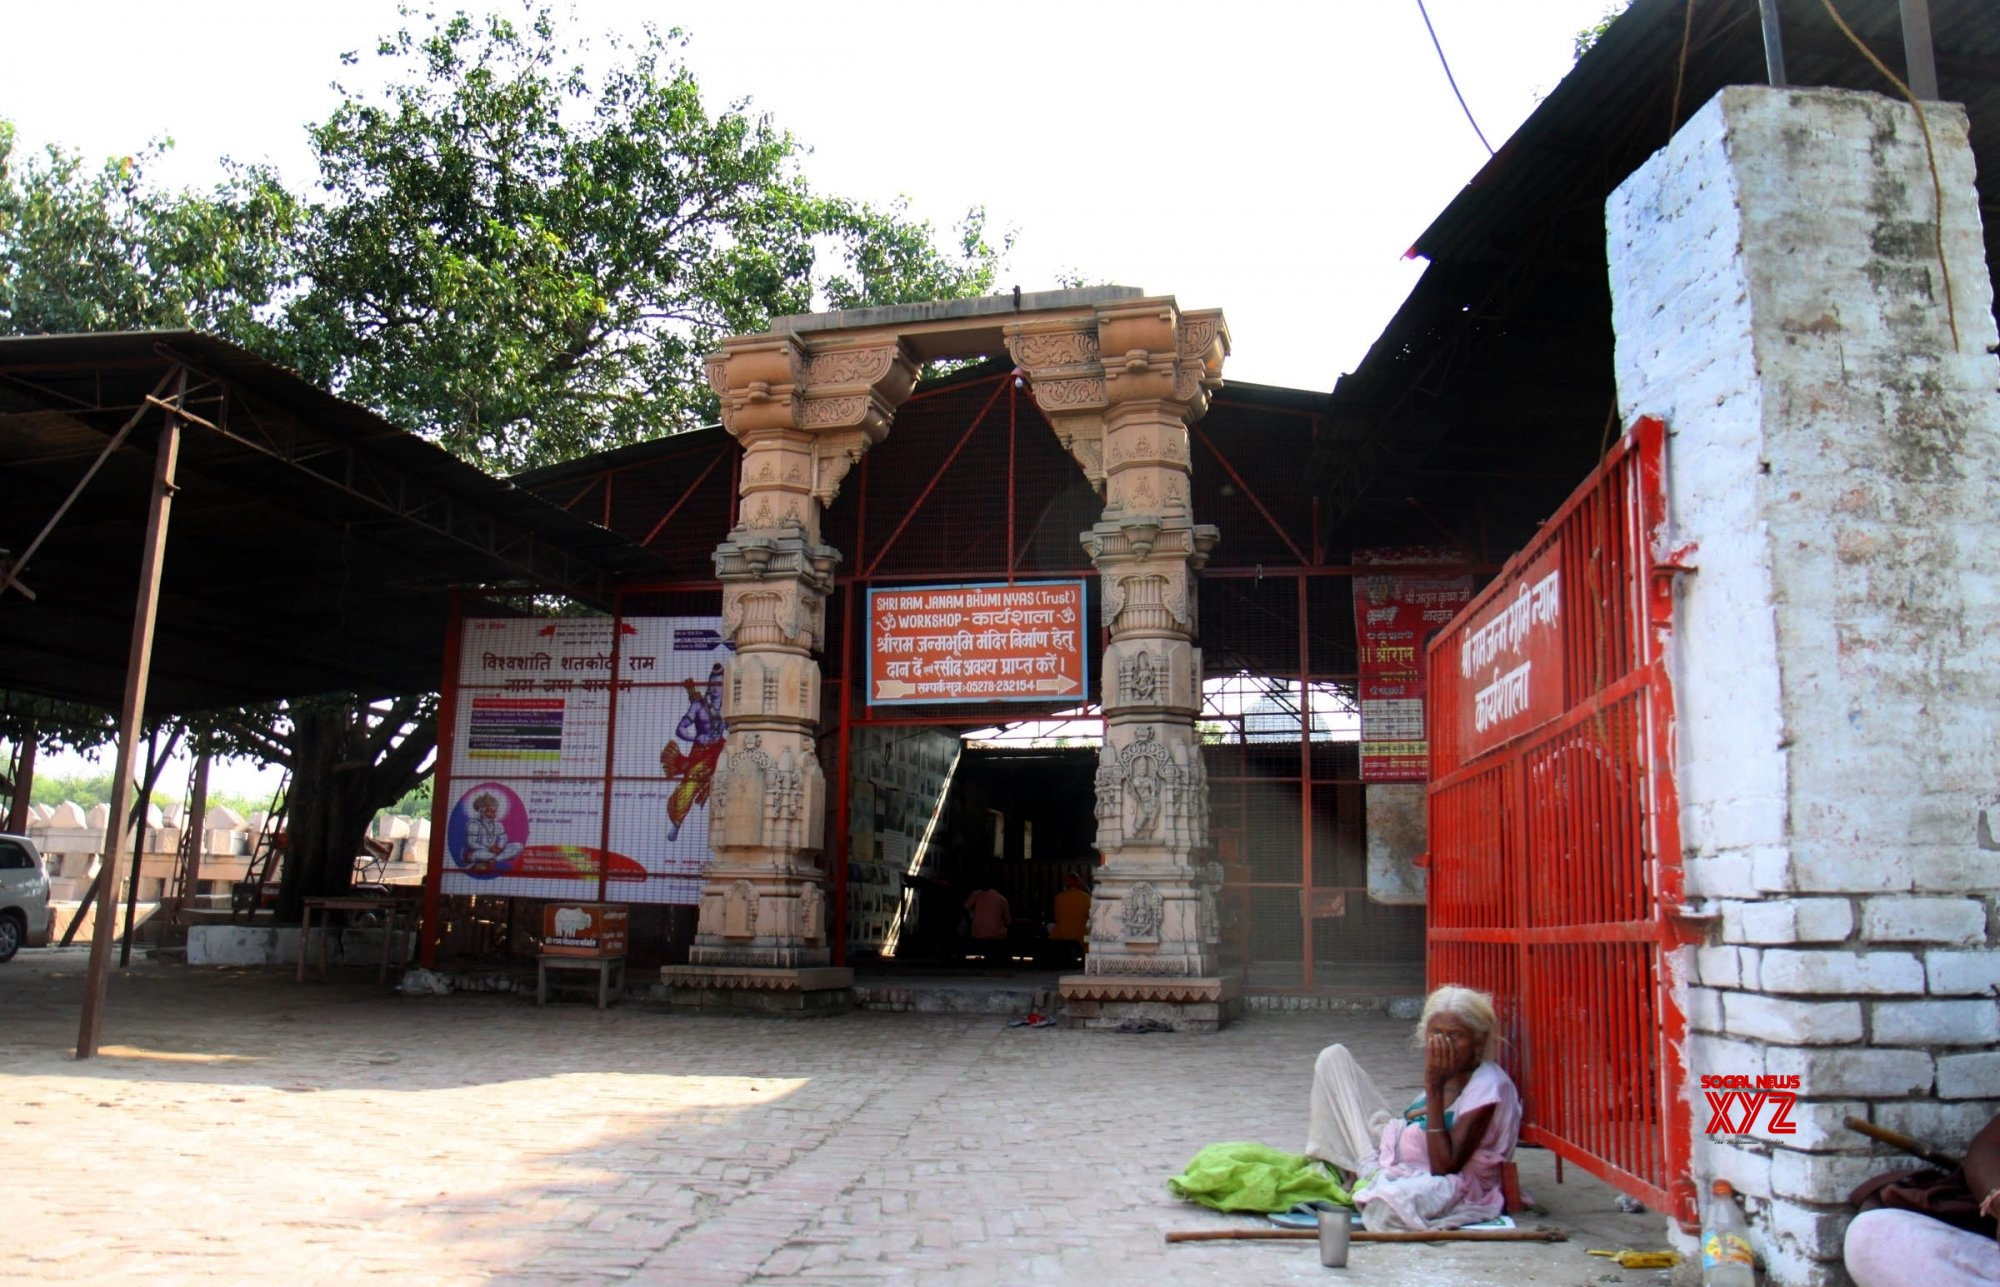 ALERT: Ayodhya on high alert following intel about terrorists coming in from Nepal